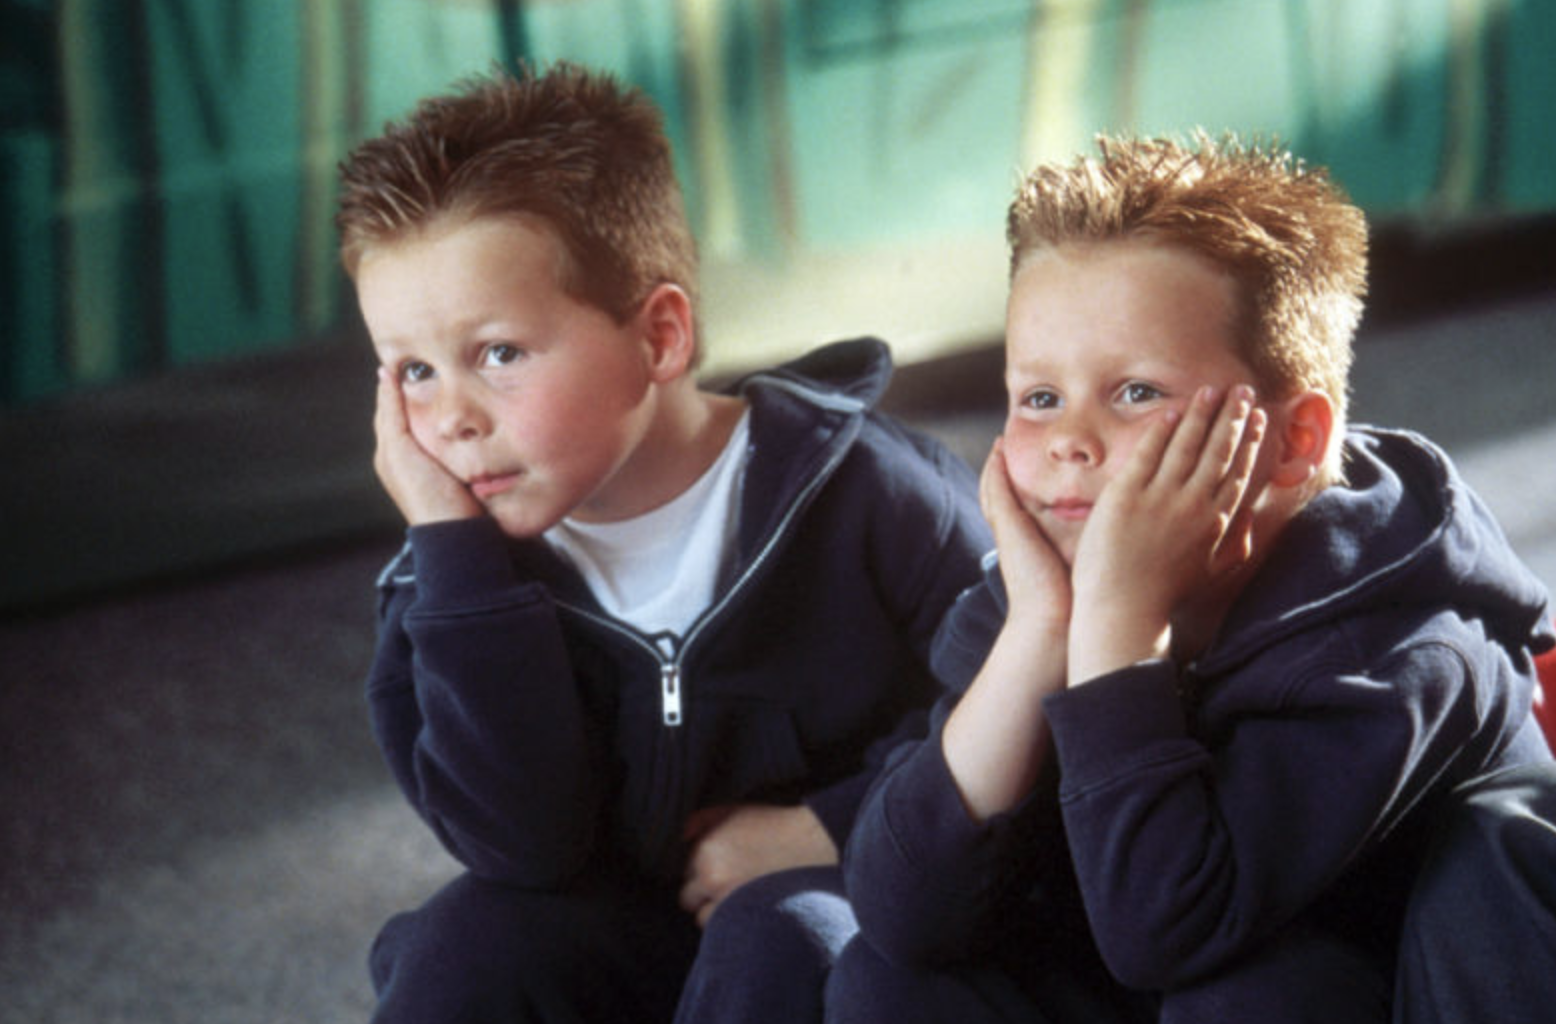 Cheaper By The Dozen Twins Kyle and Nigel Baker from a movie still